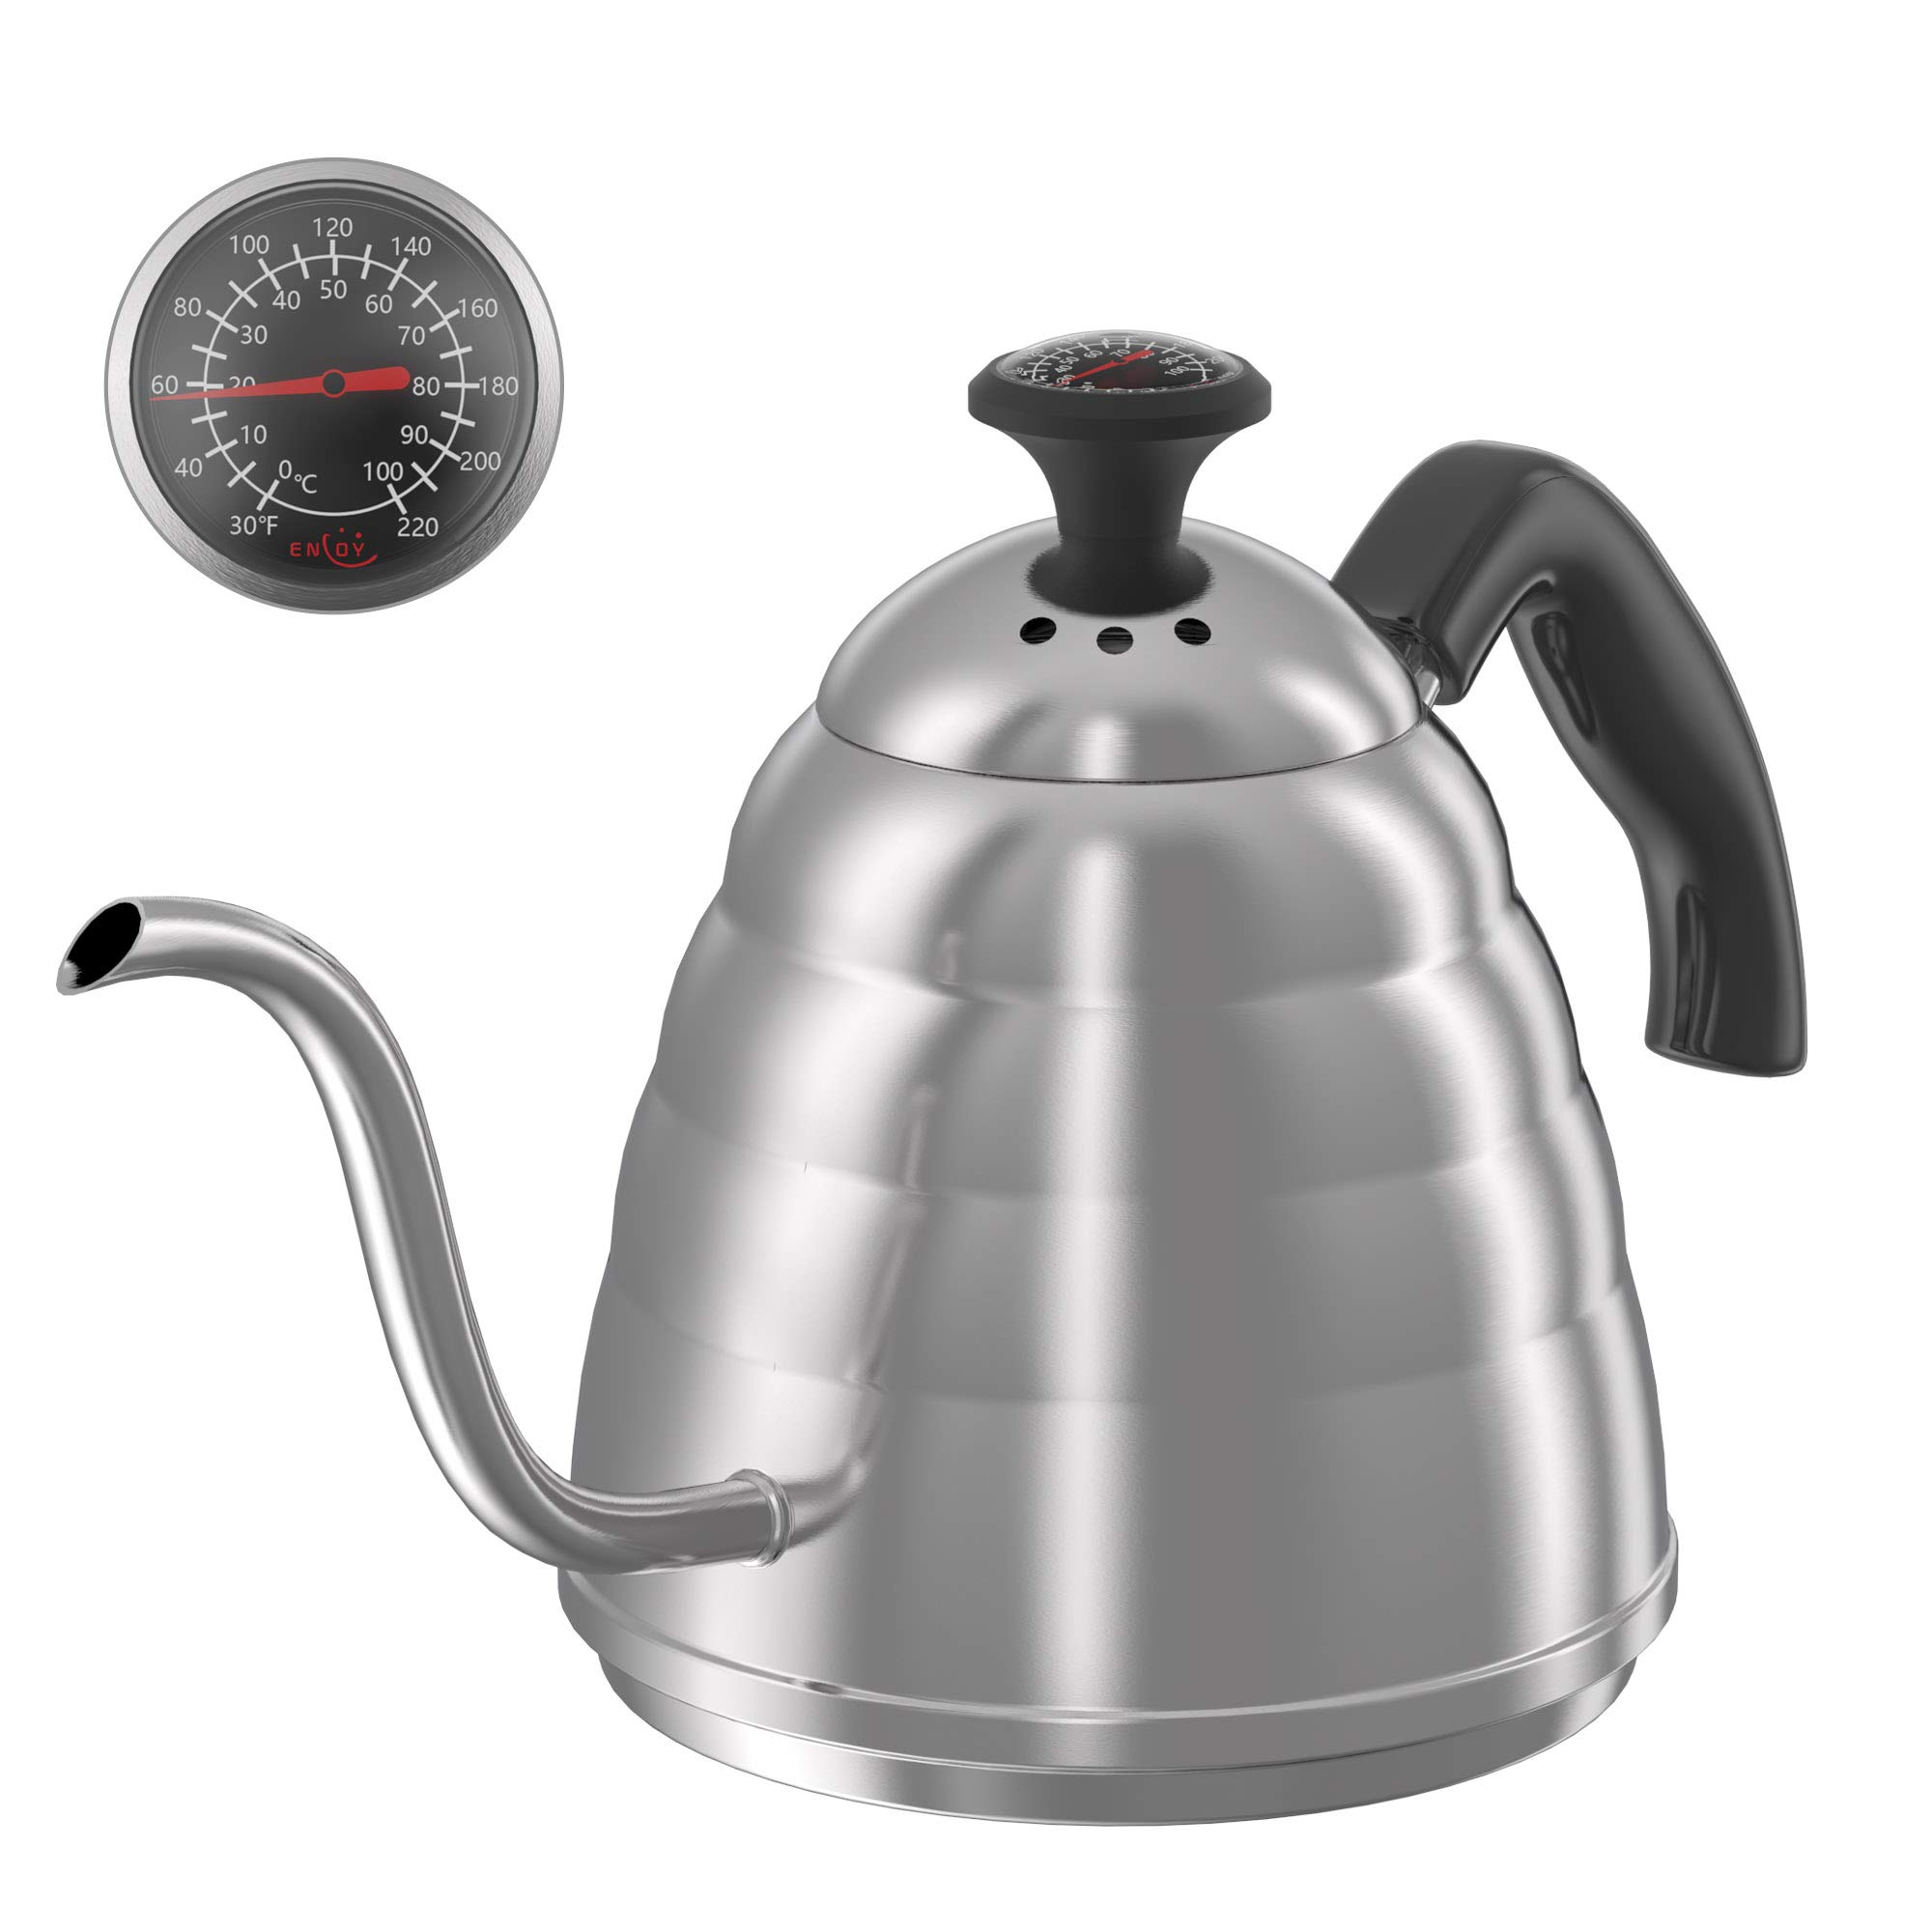 Gooseneck Pour Over Coffee Kettle, Coffee Kettle Use for Drip Coffee and Tea, Stainless Steel Pour Over Kettle with Fixed Thermometer for Exact Temperature (34floz)